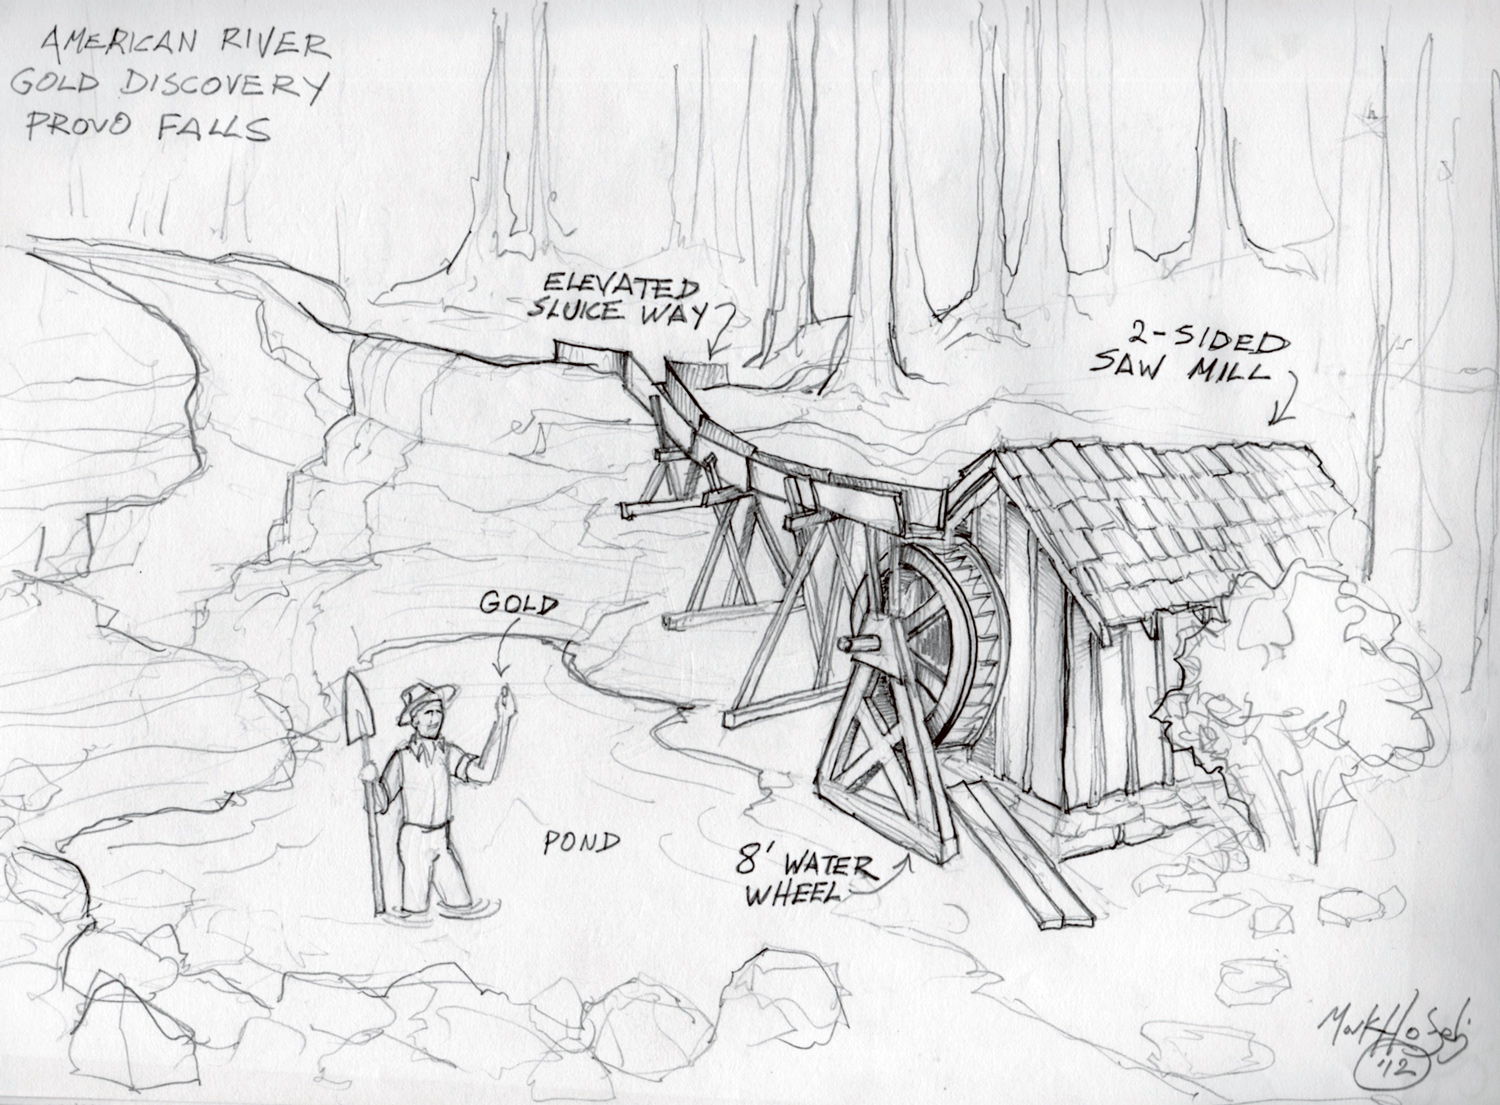 I recently Art Directed a little mini-series for the Discovery Channel for production designer Ernesto Solo. It was about the California Gold Rush. Here is a notebook sketch I did on location to show how we might build a little mill in the upper Provo Falls in Utah.